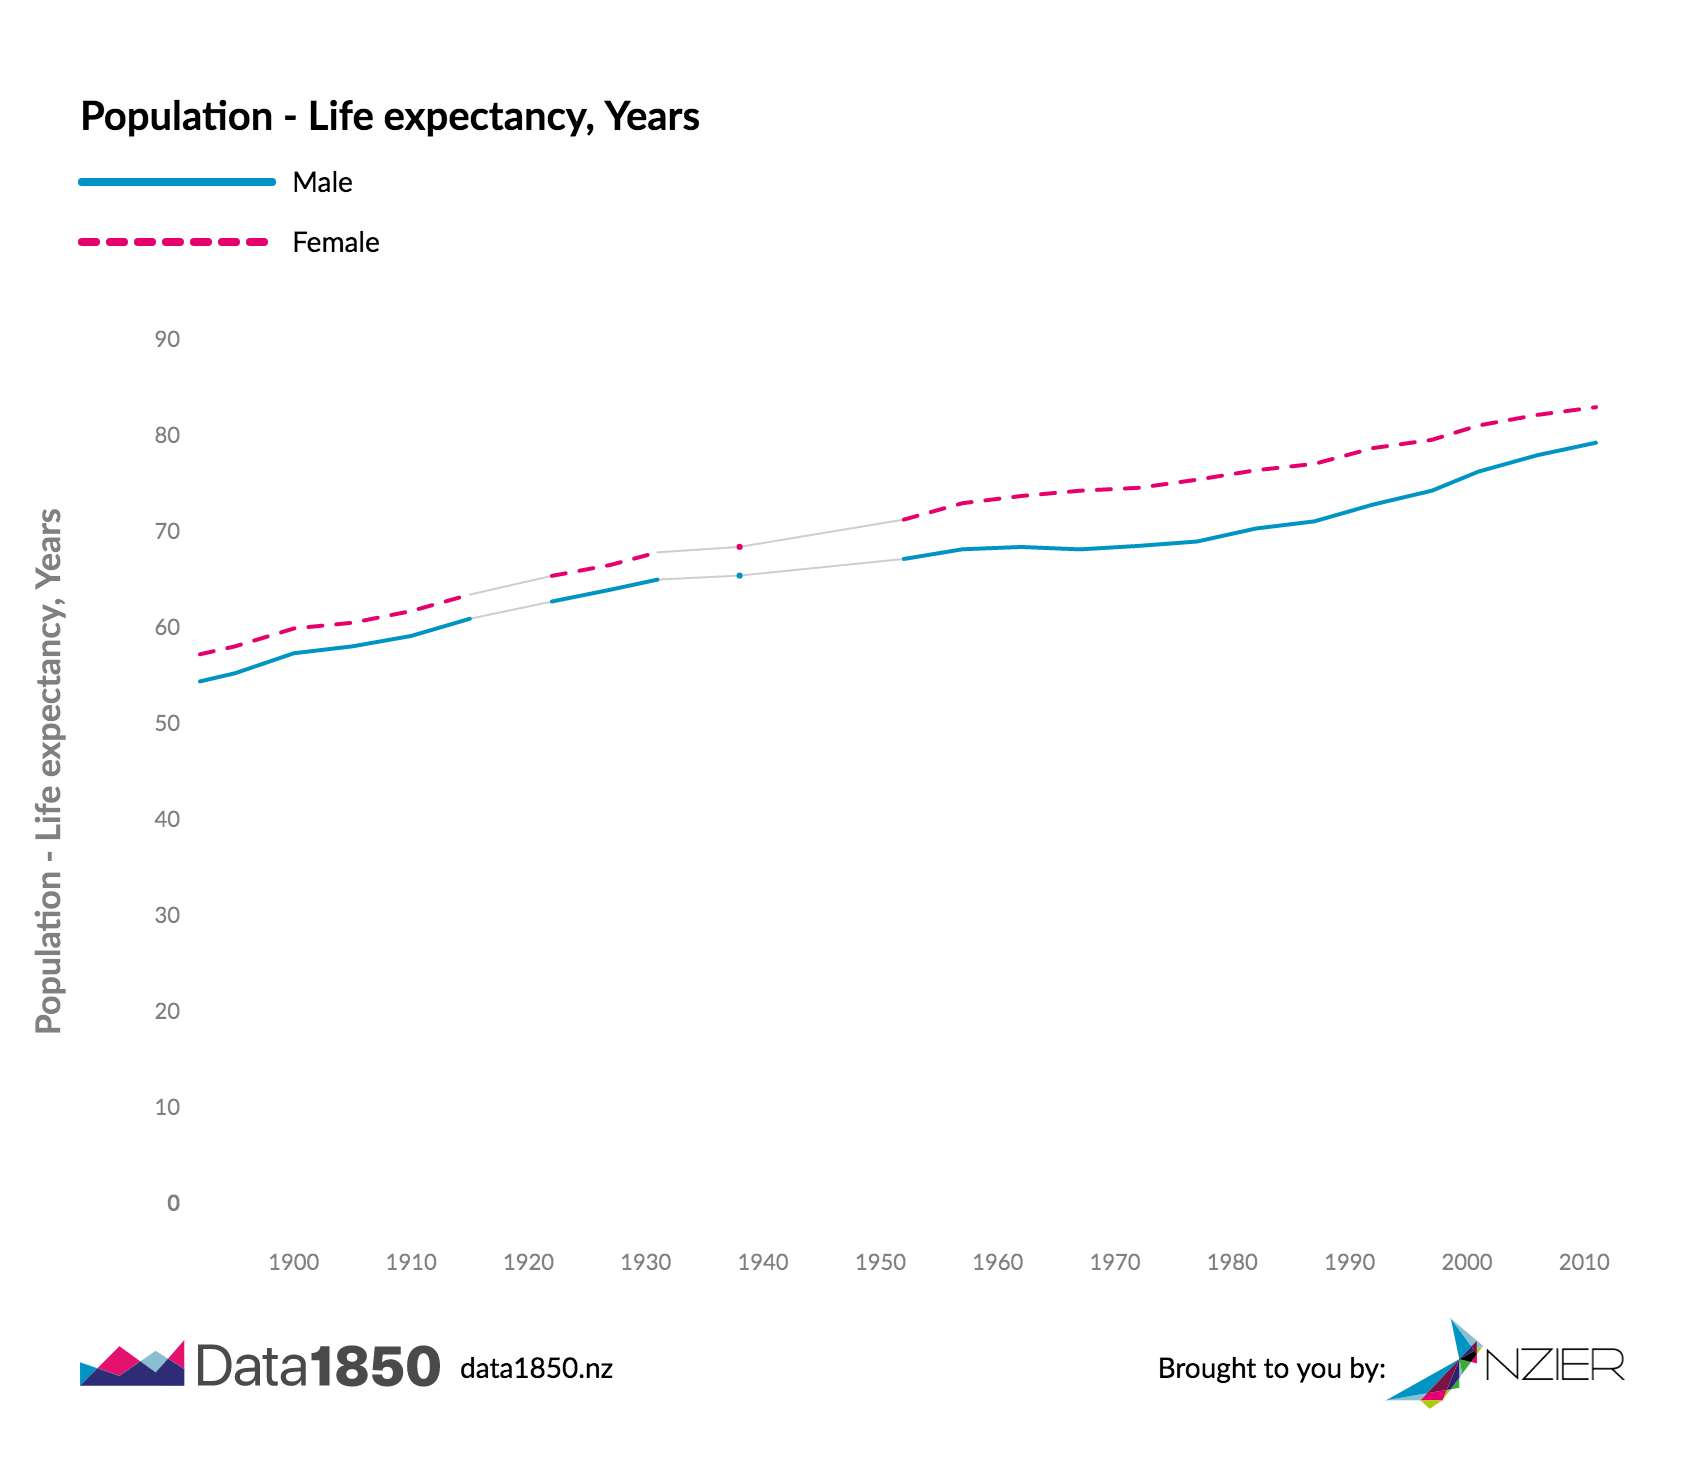 Life expectancy in New Zealand - data from NZIER, data1850.nz